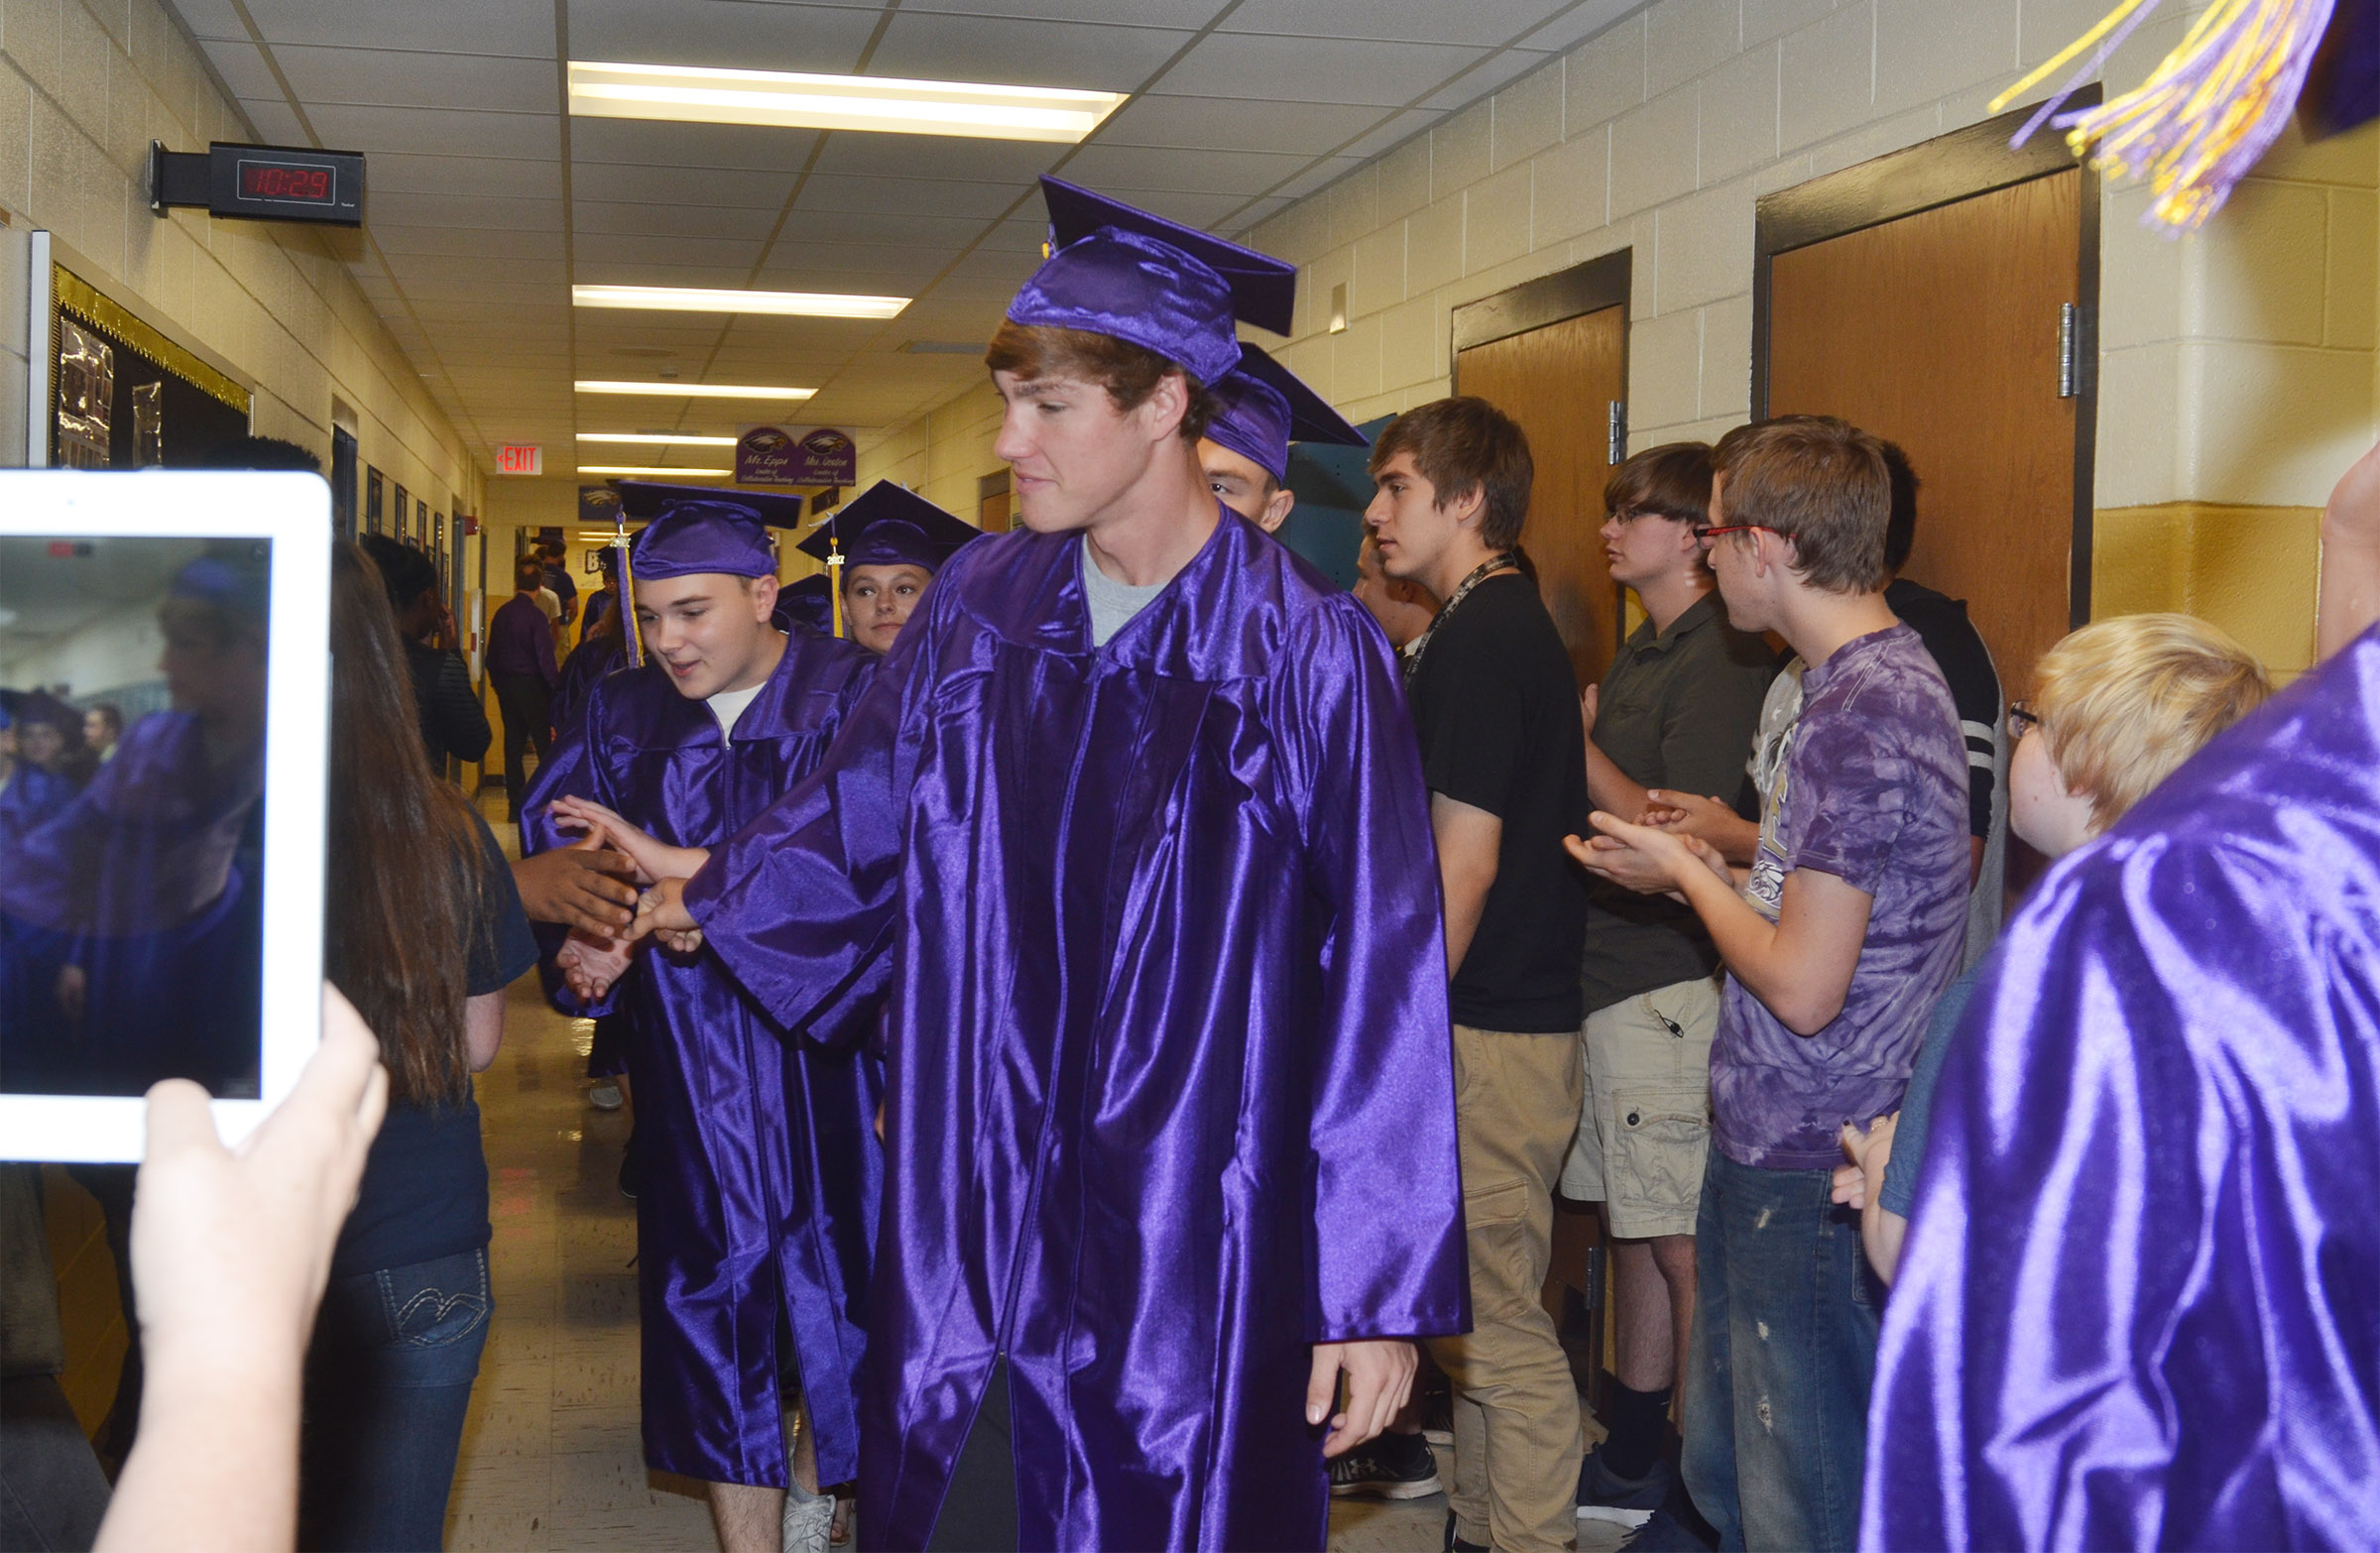 CHS senior Zack Bottoms walks down the CHS hallways with his classmates.